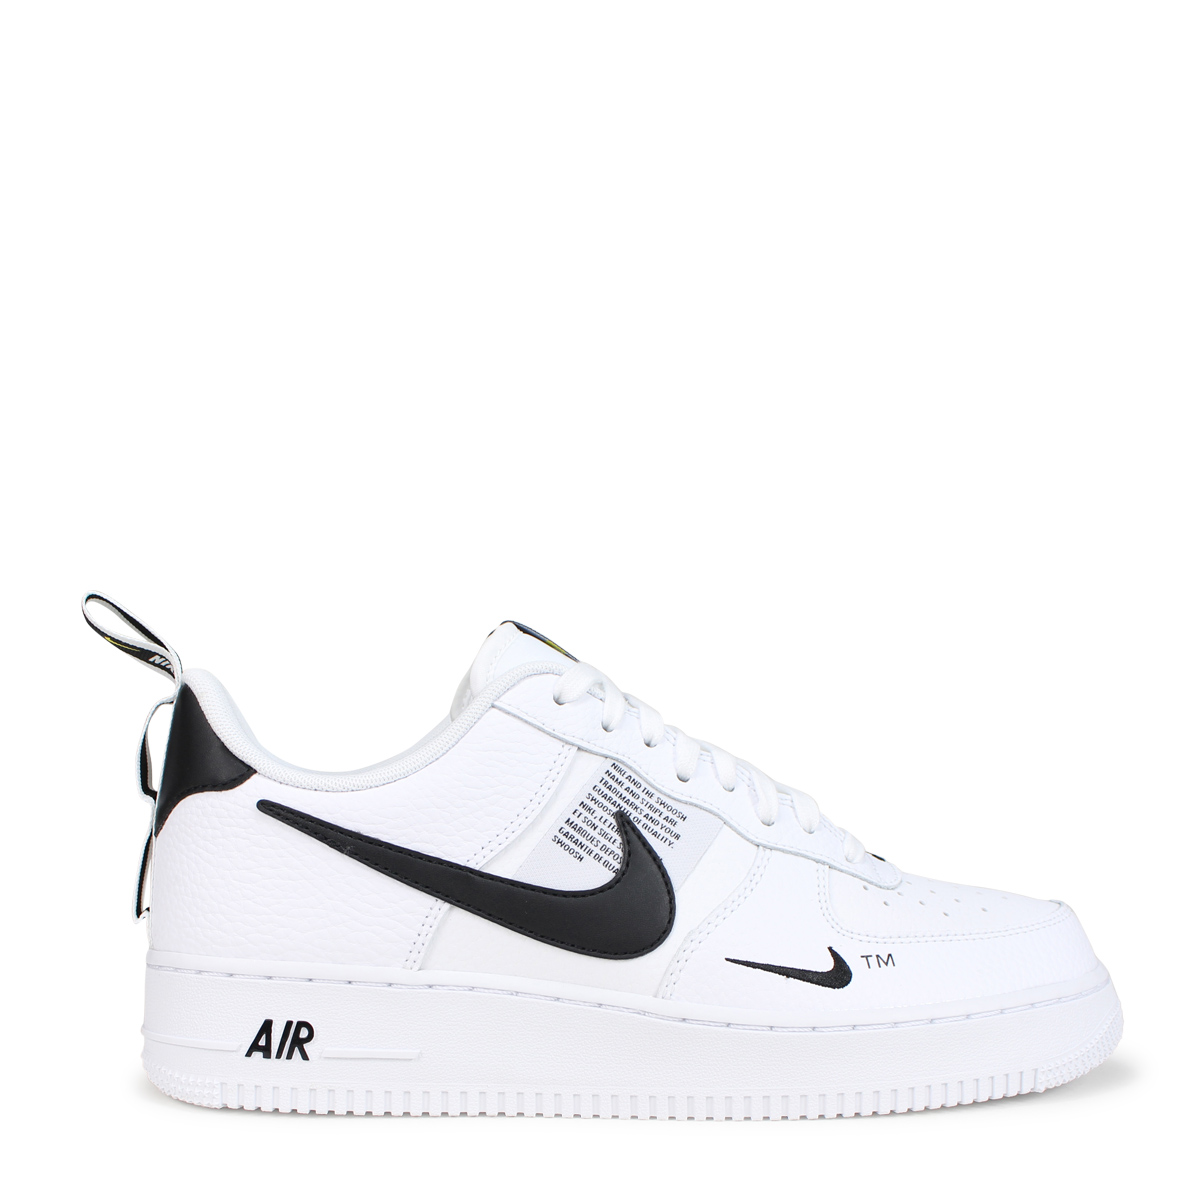 nike air force 1 07 lv8 utility nere